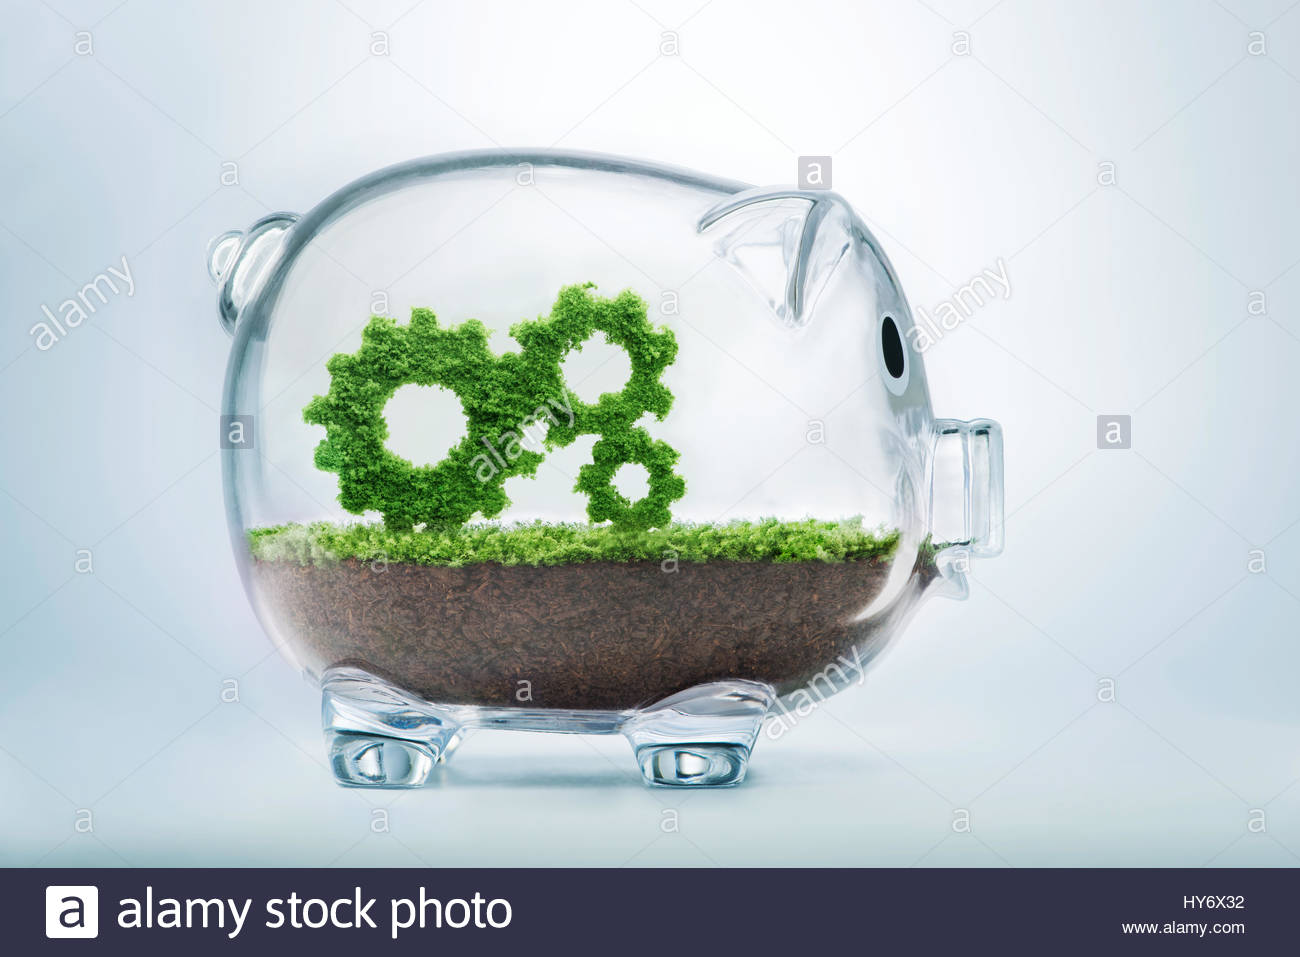 Business growth concept with grass growing in shape of gears inside transparent piggy bank - Stock Image